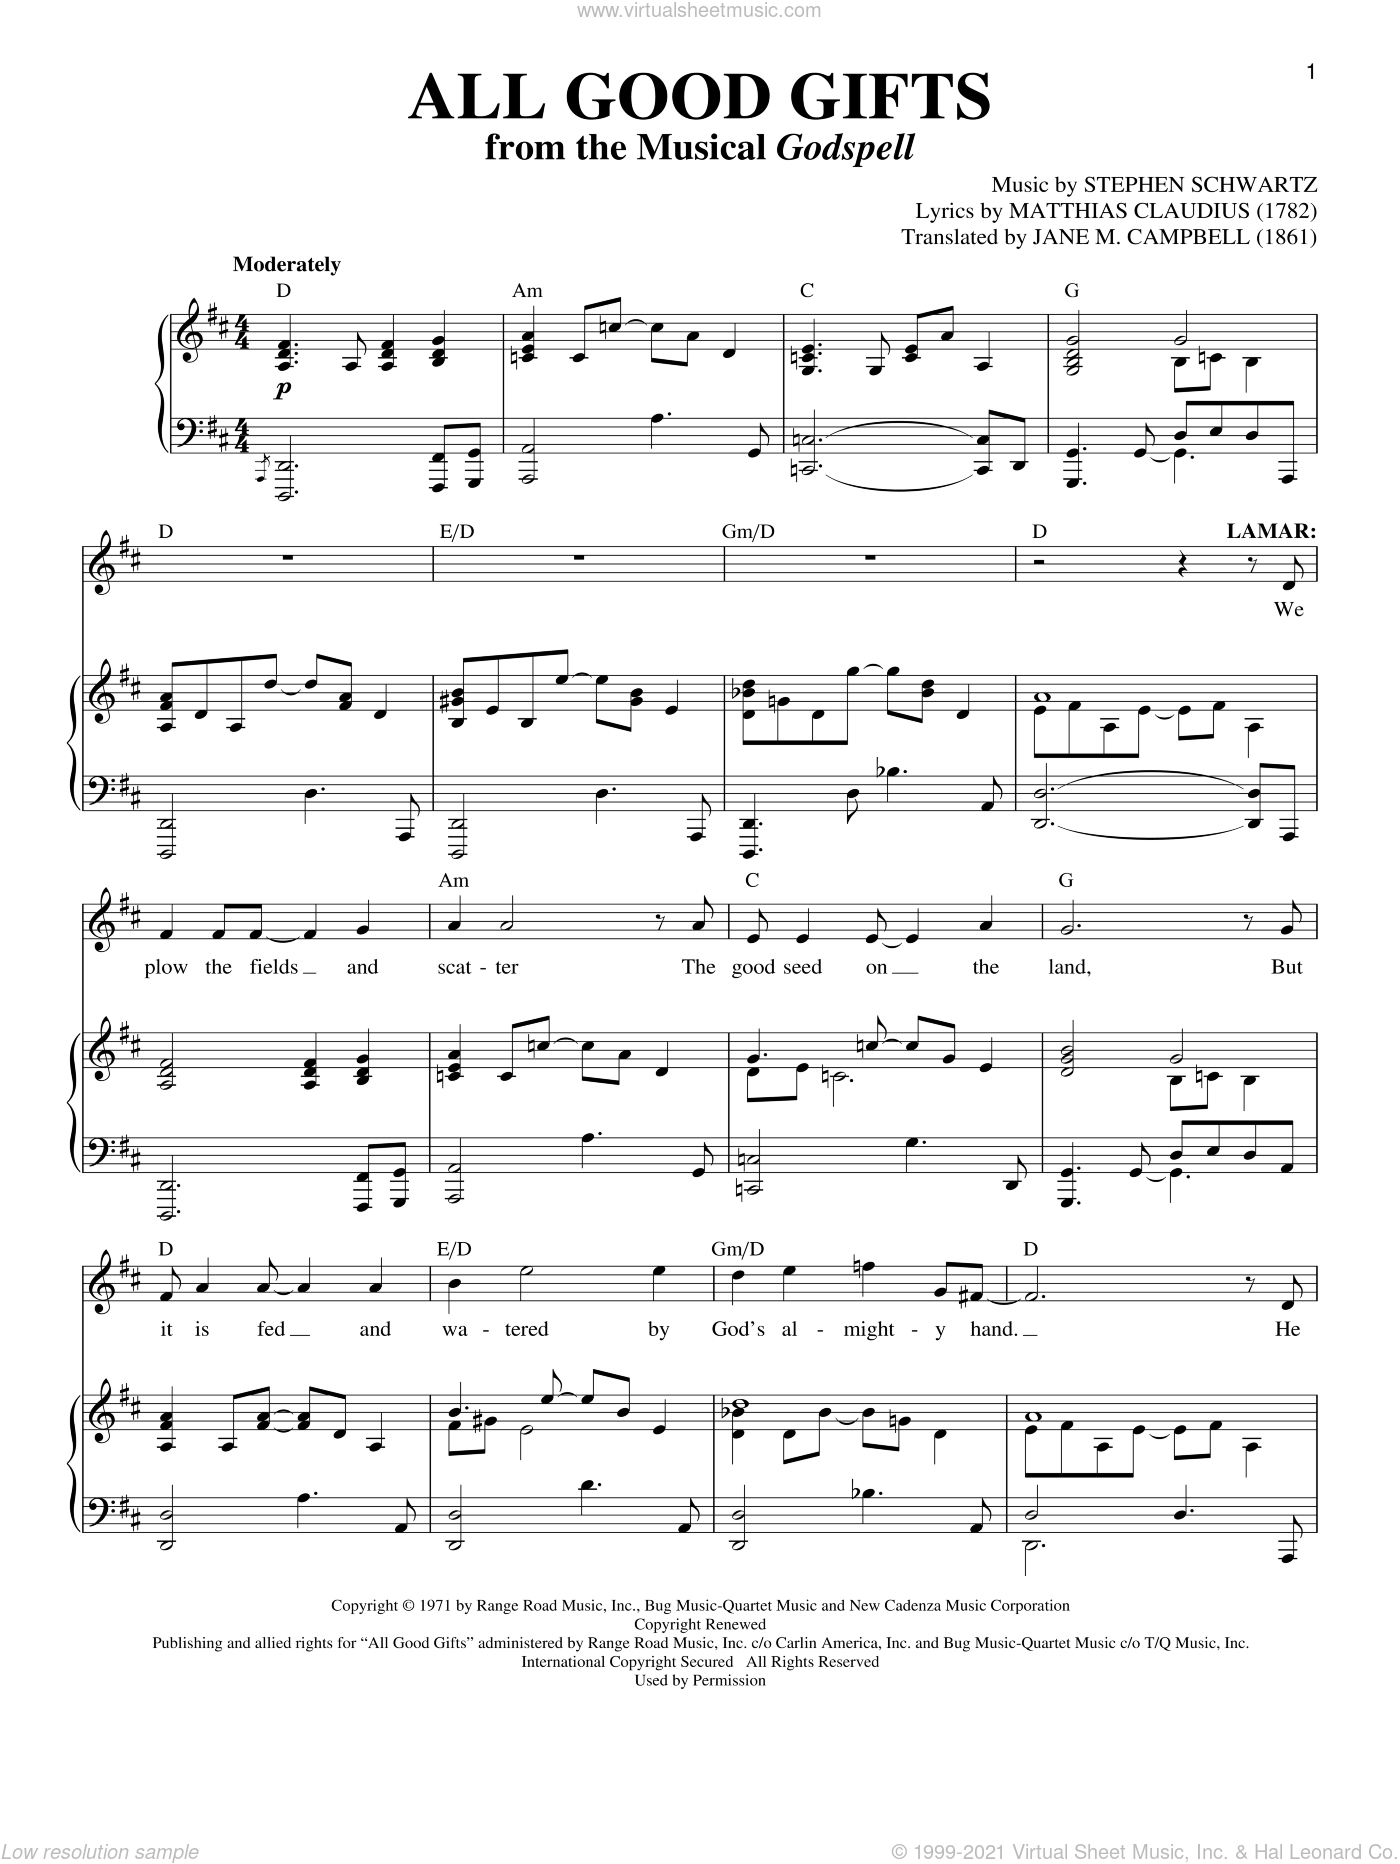 All Good Gifts sheet music for voice and piano by Matthias Claudius